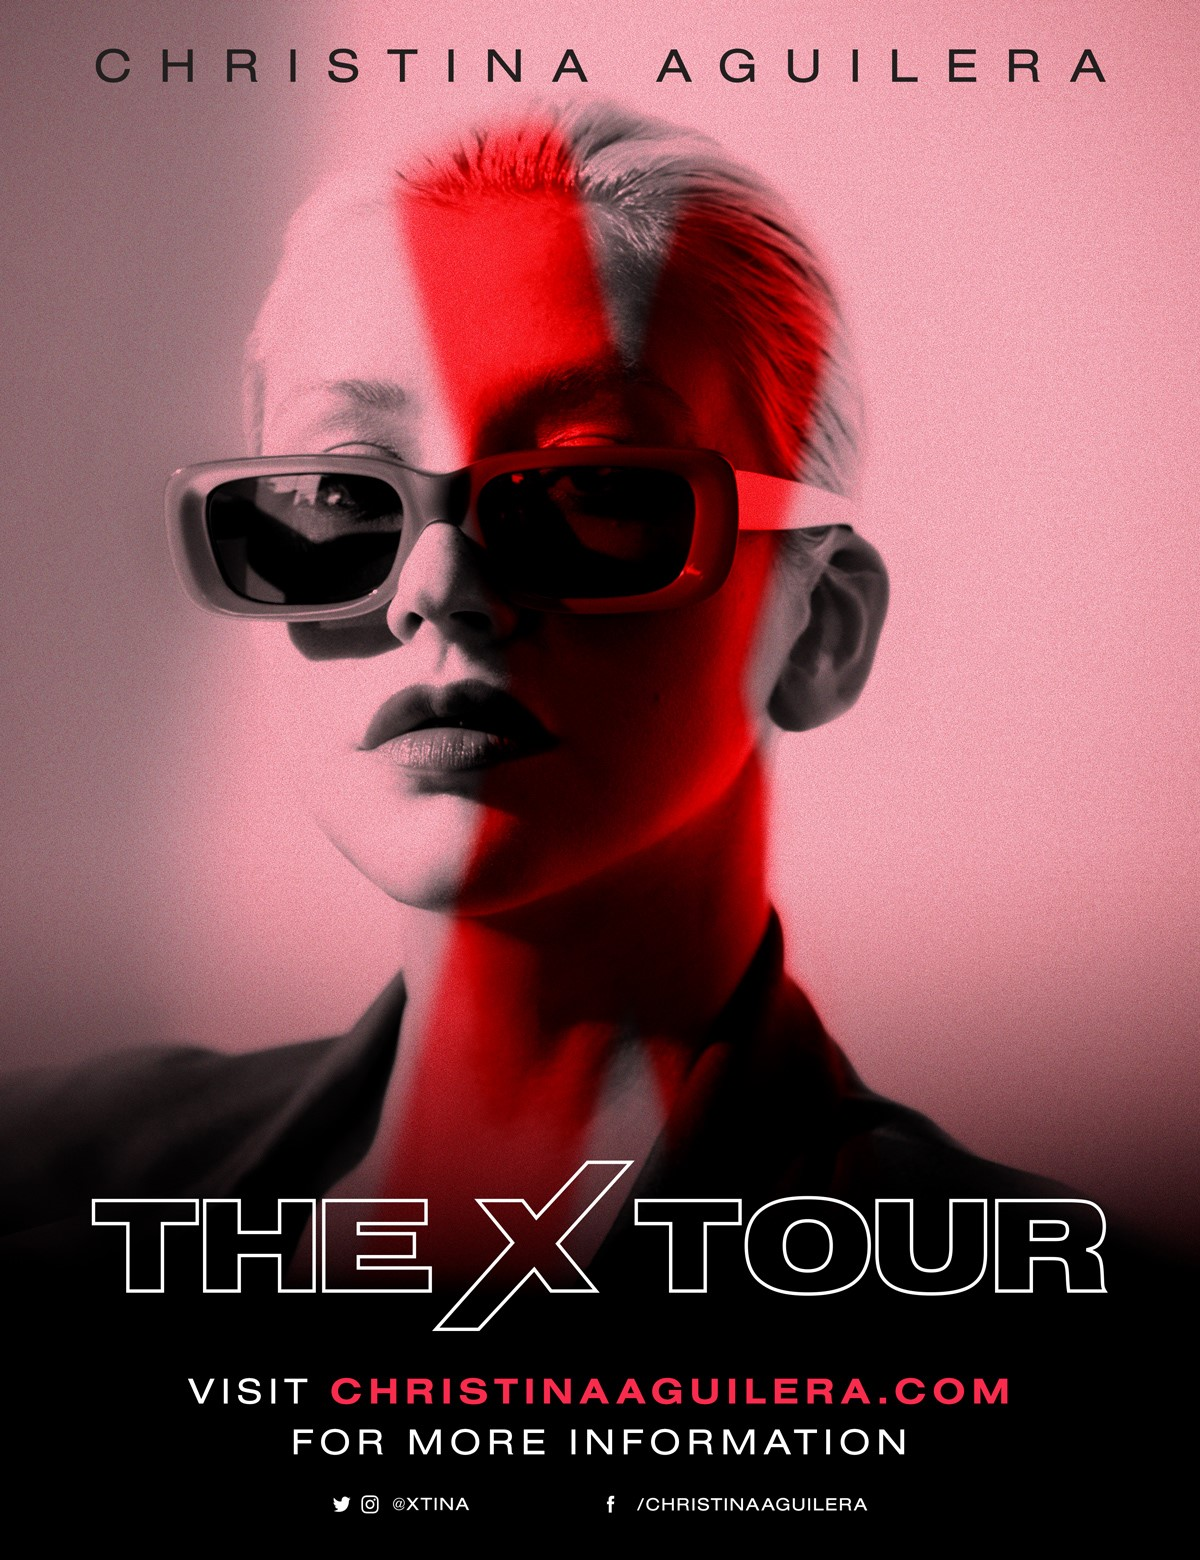 International Superstar CHRISTINA AGUILERA announces The X Tour